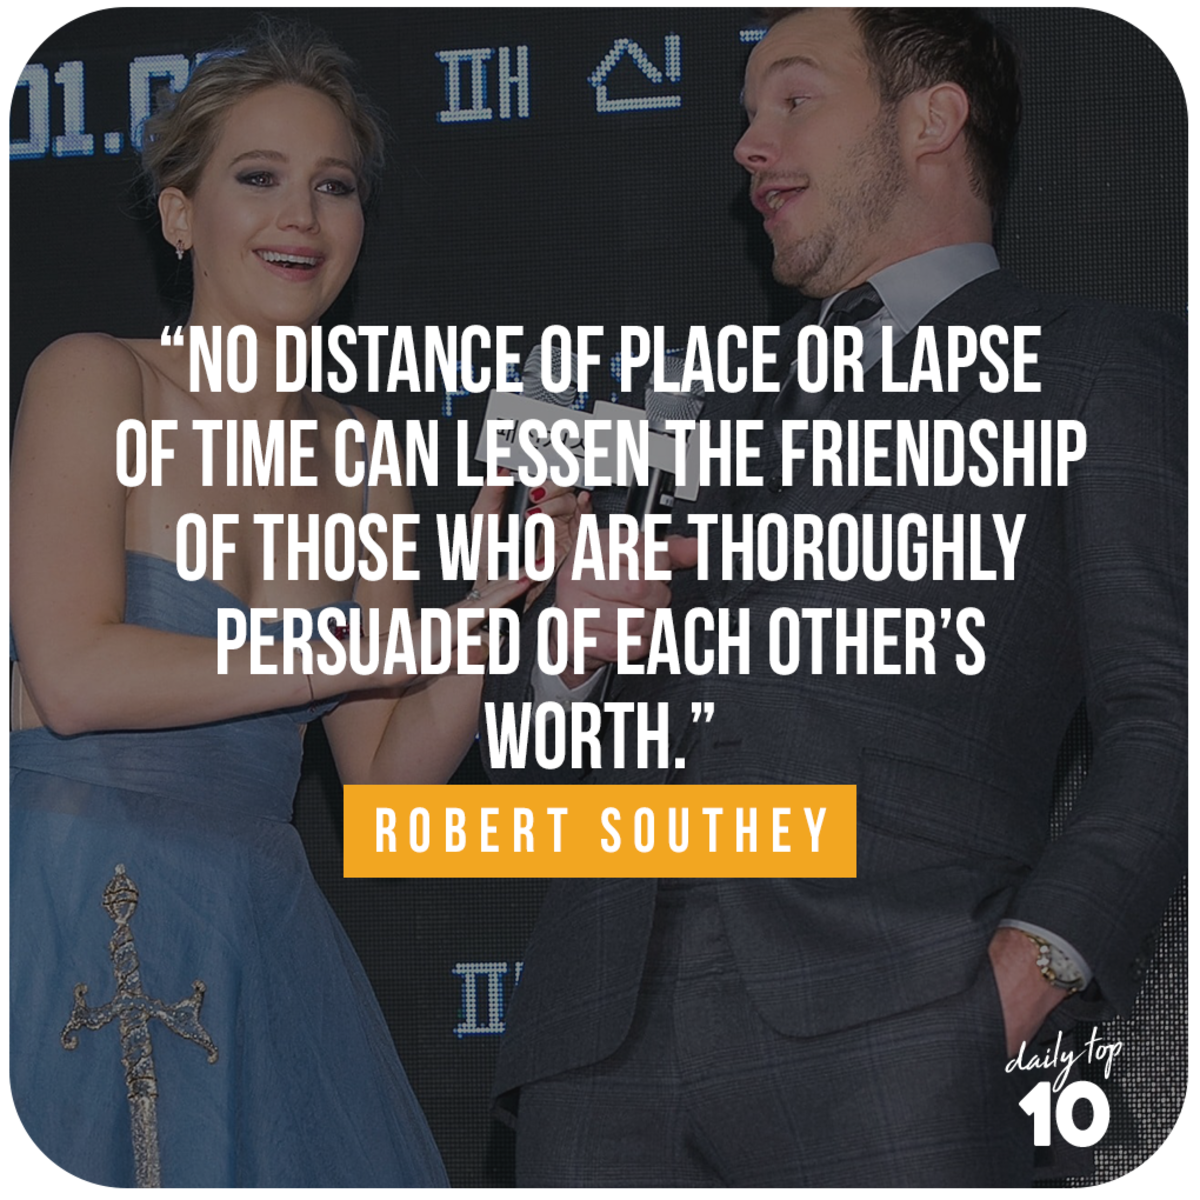 Friendship quote with Jennifer Lawrence and Chris Pratt.